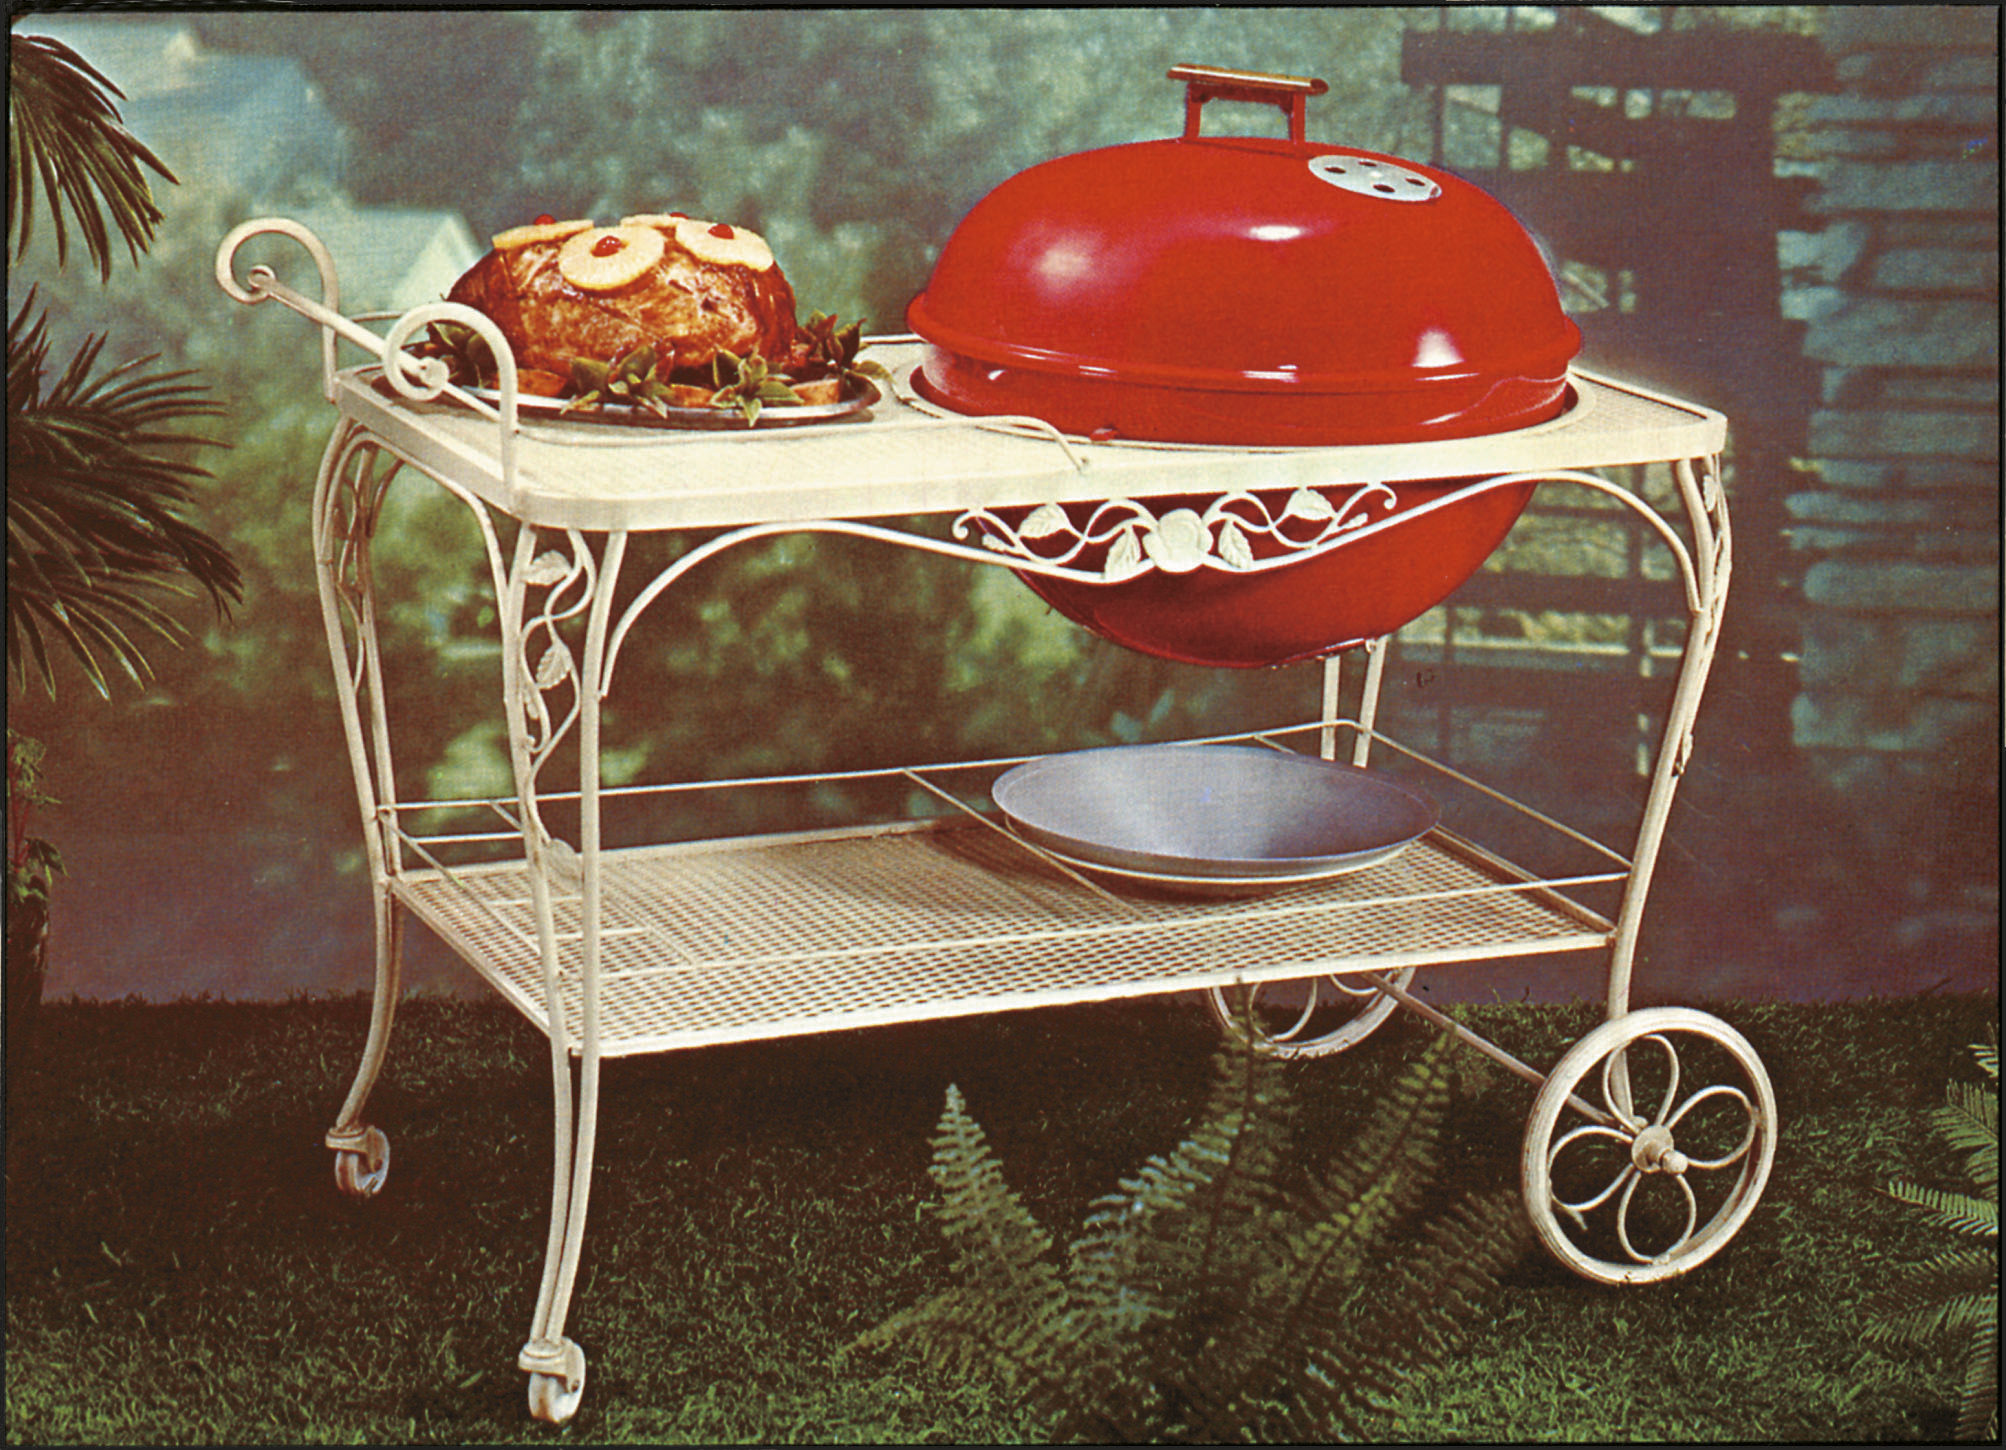 Same Kettle - different setting (Weber/PA)